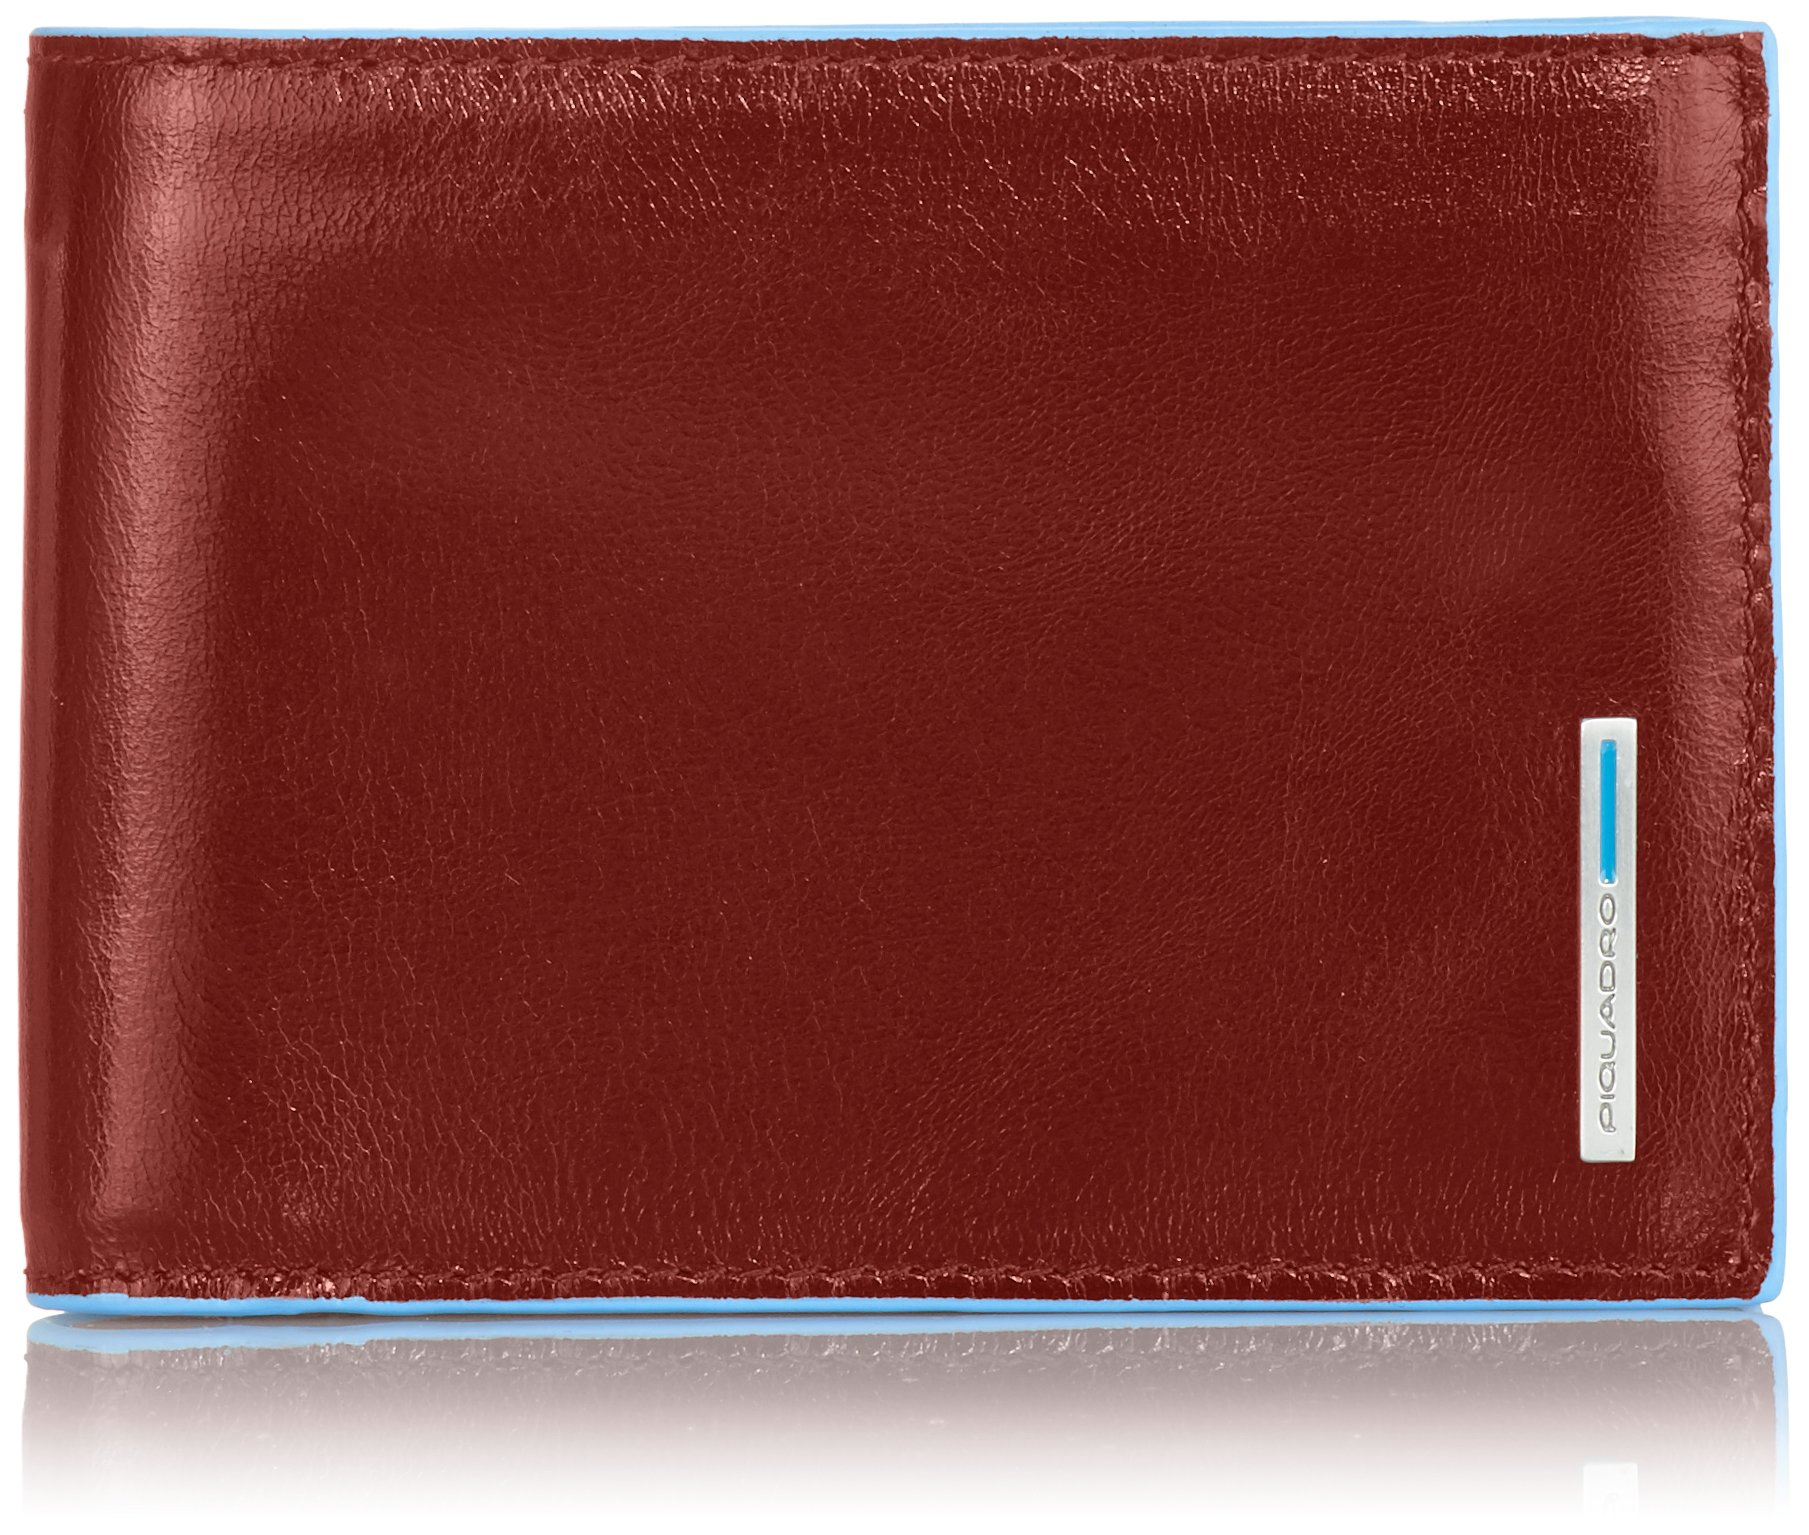 Piquadro Man's Wallet In Leather, Orange 1392, One Size